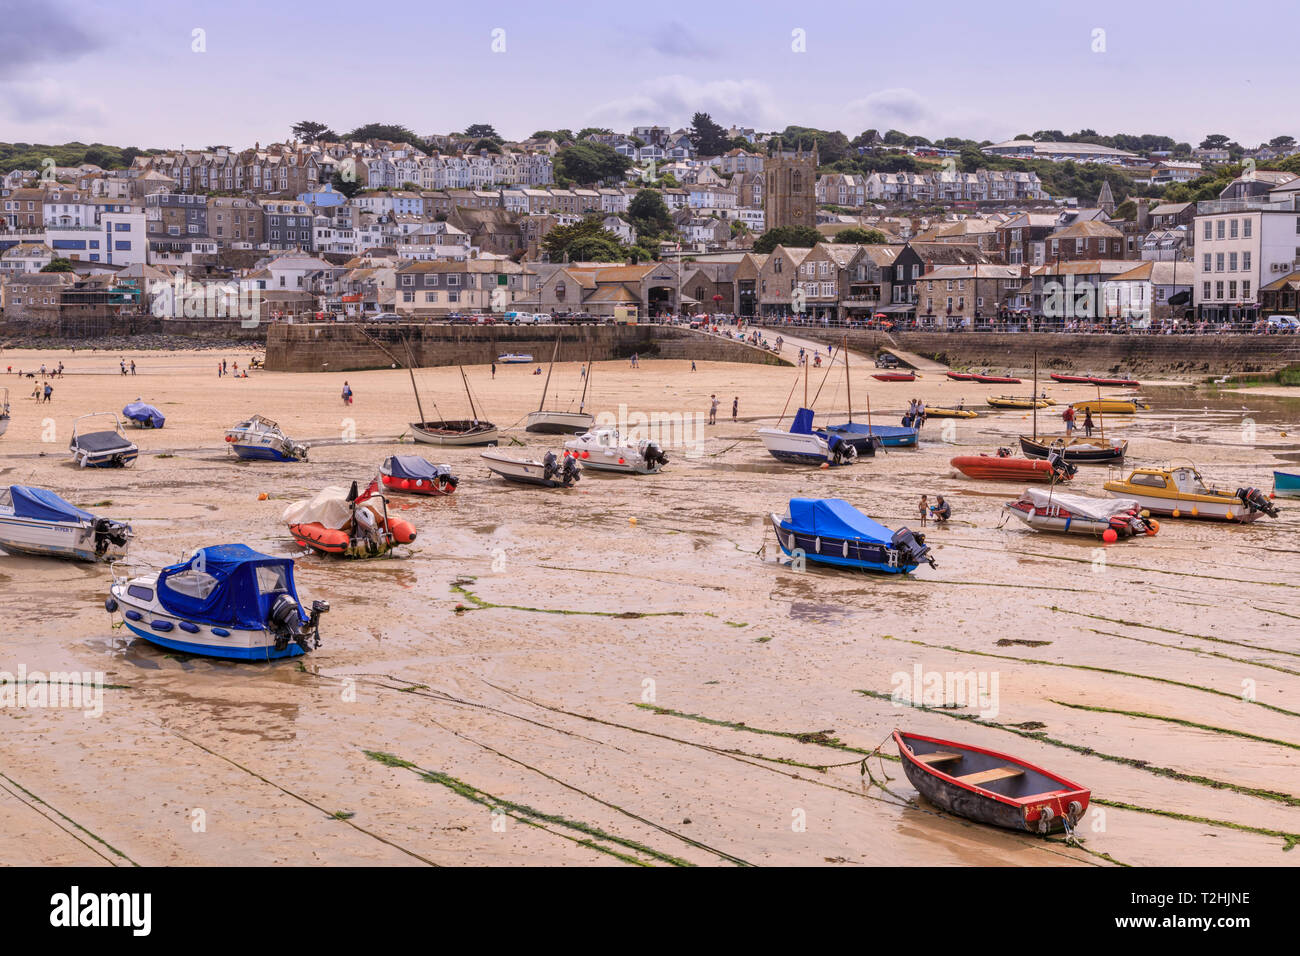 Boats, harbour at low tide, St Ives, popular seaside resort in hot weather, Summer, Cornwall, England, United Kingdom, Europe - Stock Image